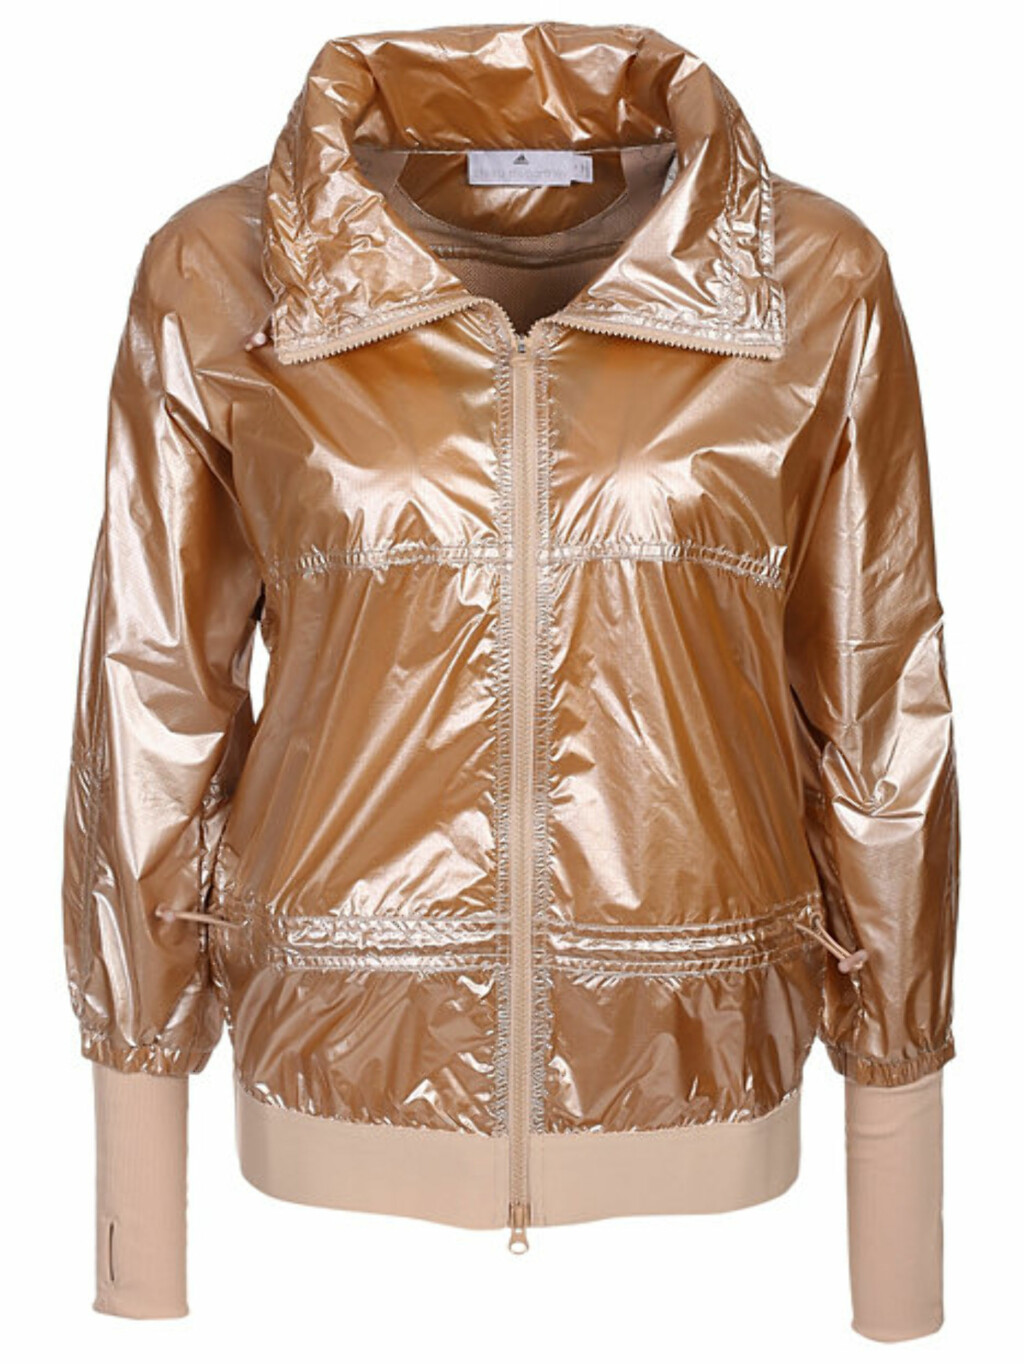 Metallisk jakke fra Adidas by Stella McCartney via Nelly.com | kr 1795